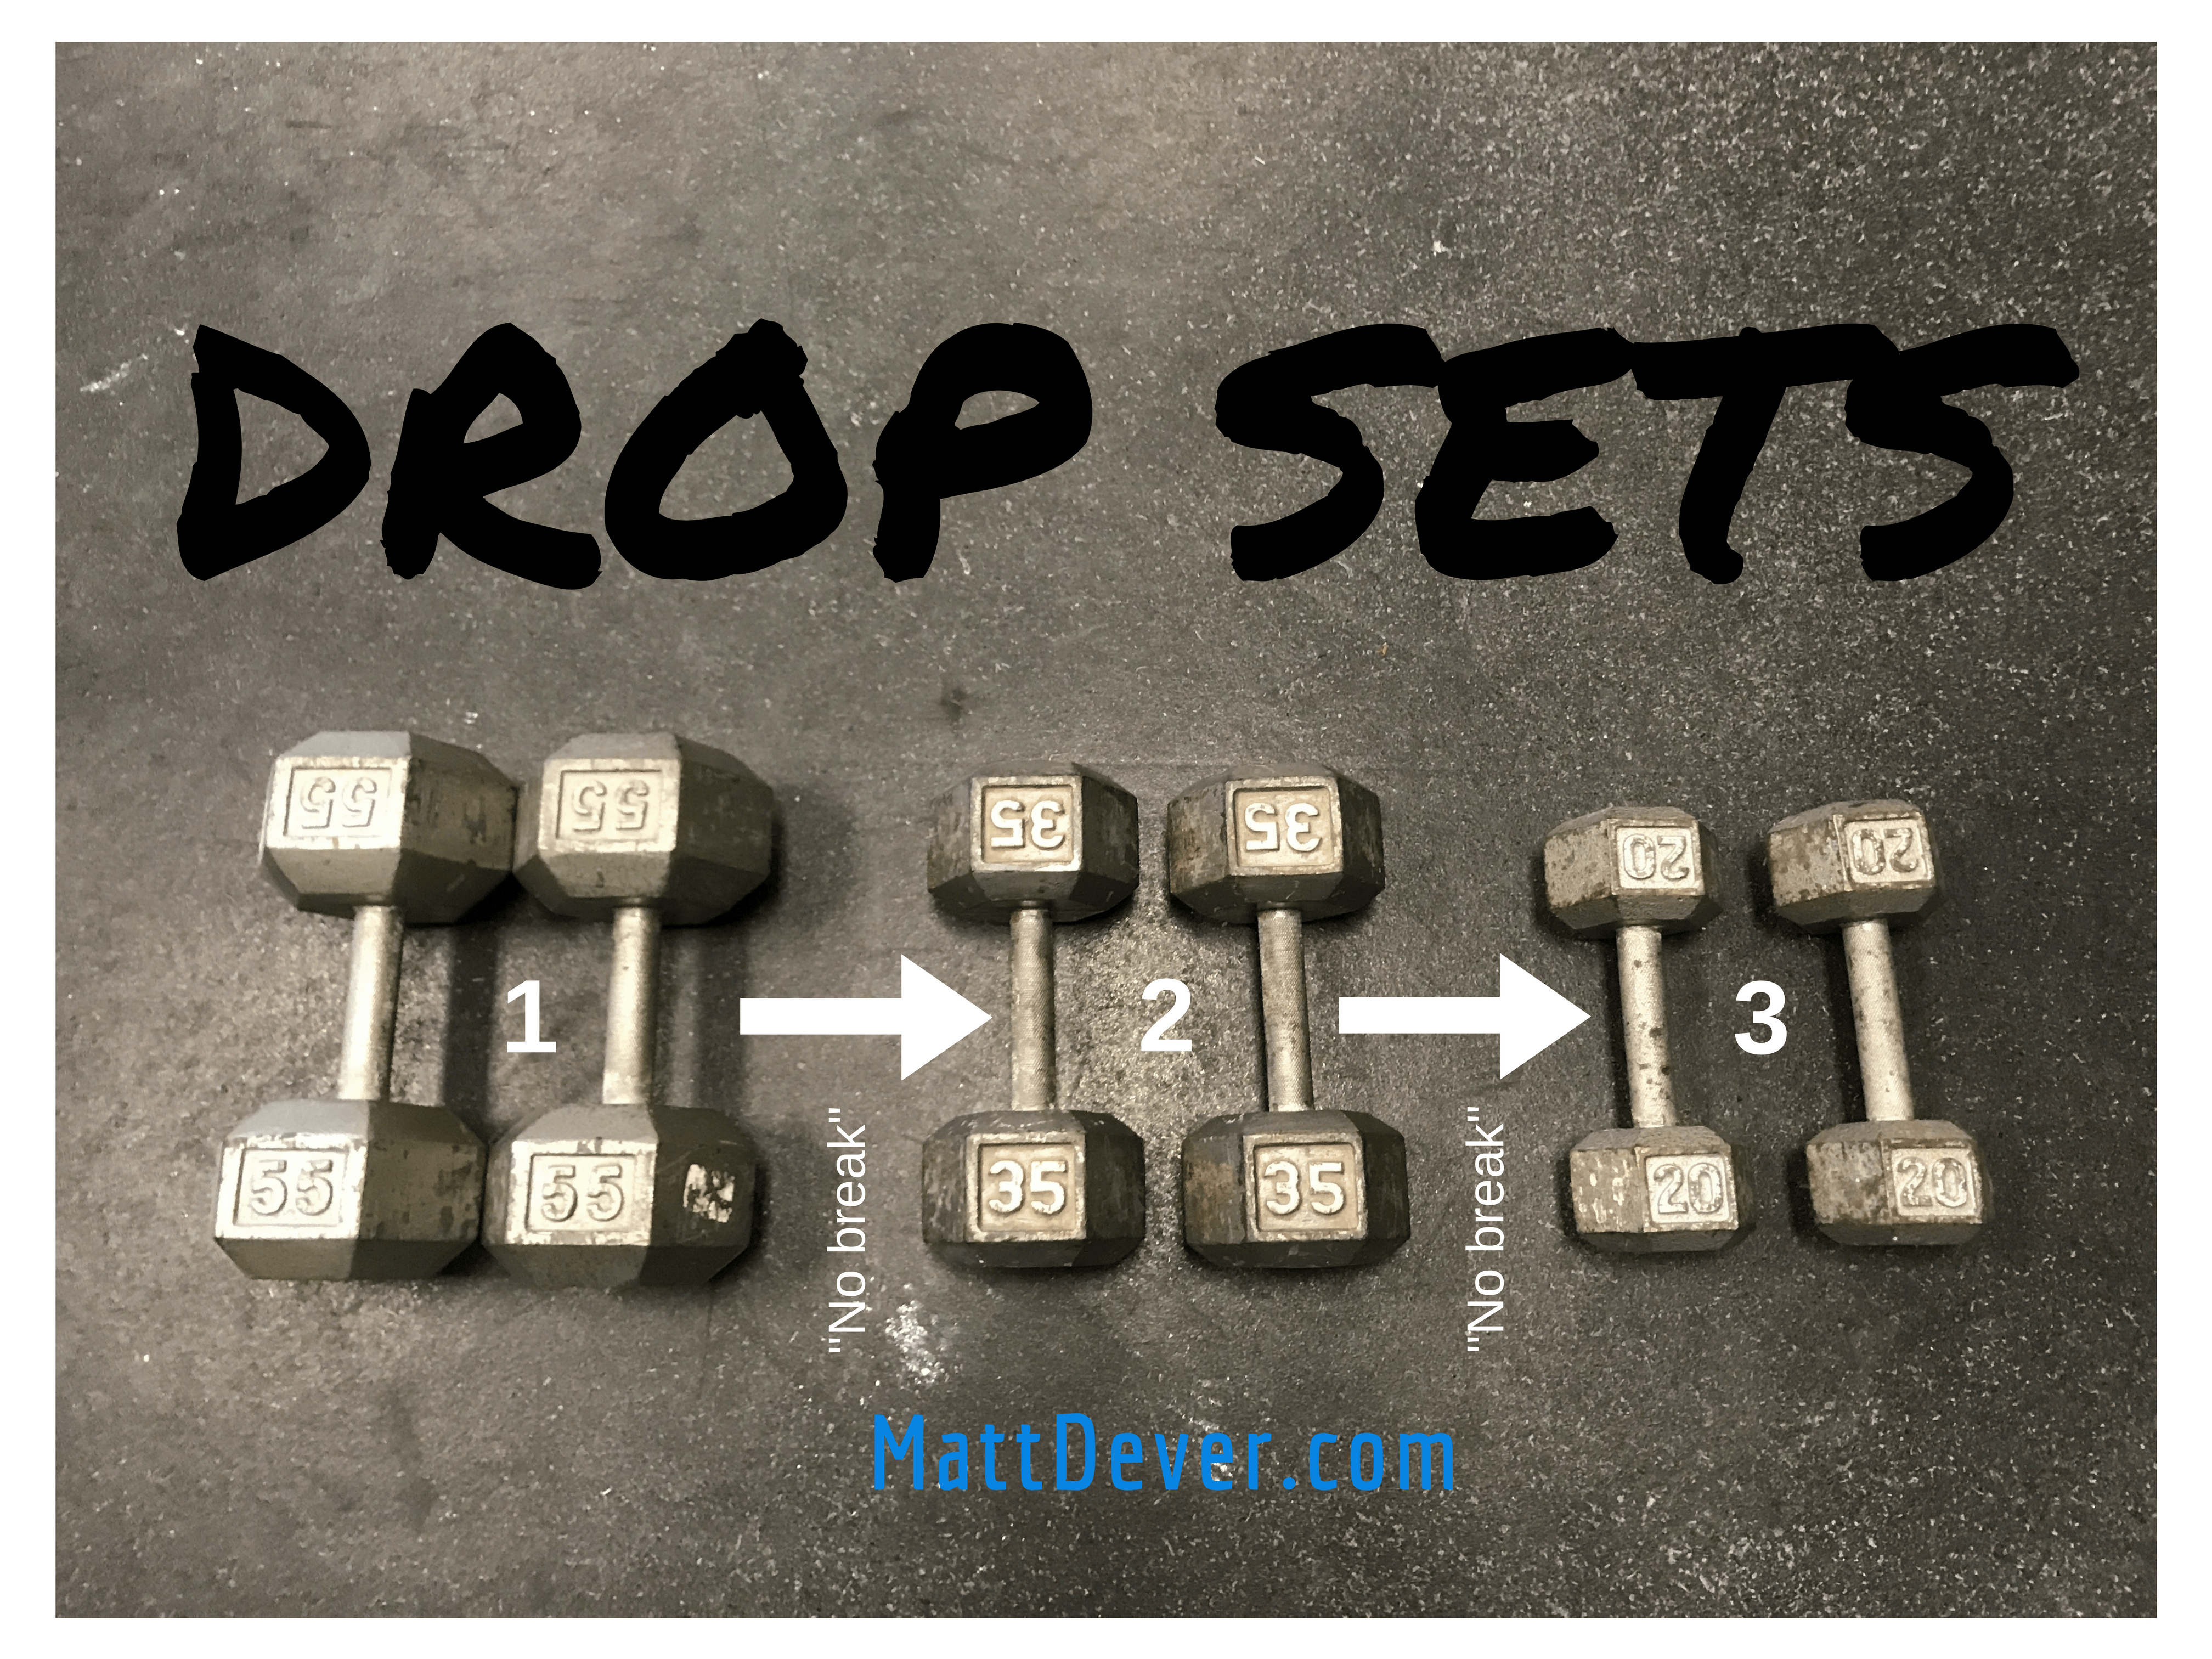 Pairs of 55, 35, and 20 pound dumbbells showing arrows indicating performing sets with each pair of dumbbells with no break for Drop Sets.